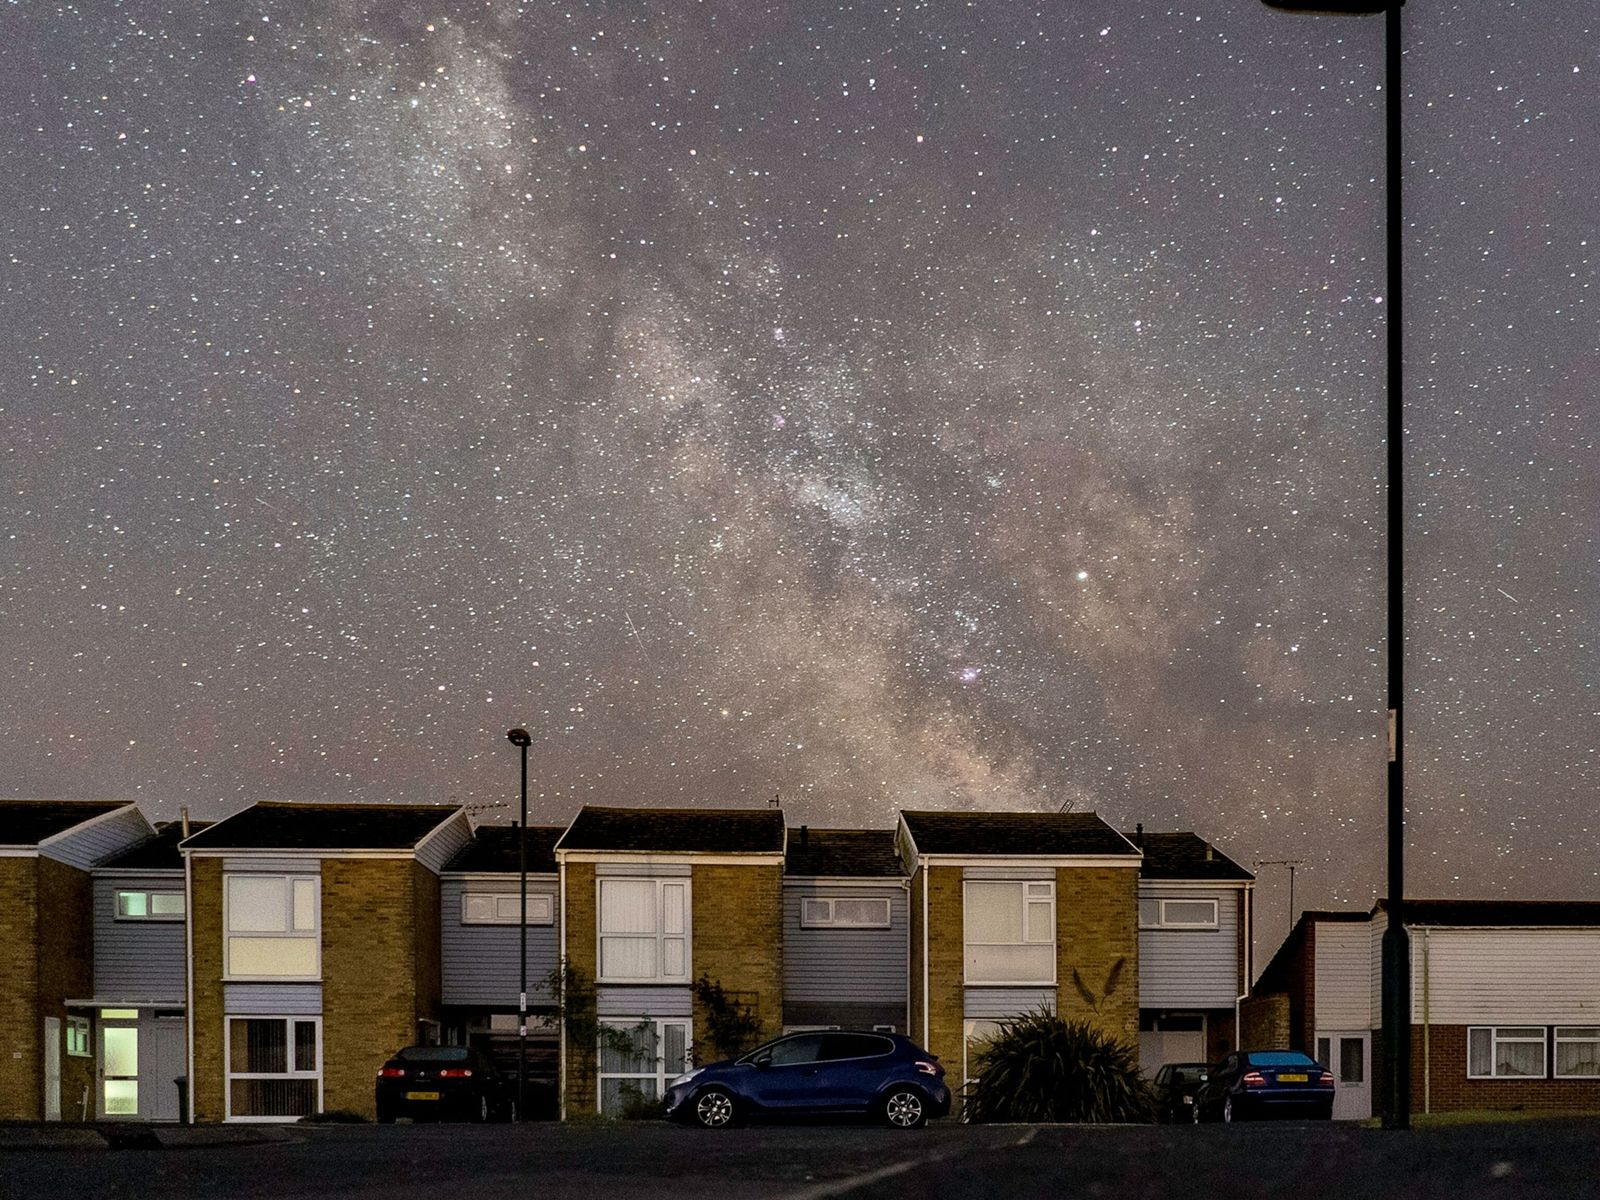 02_astronomy_photo_winners_living-space-andrew-whyte